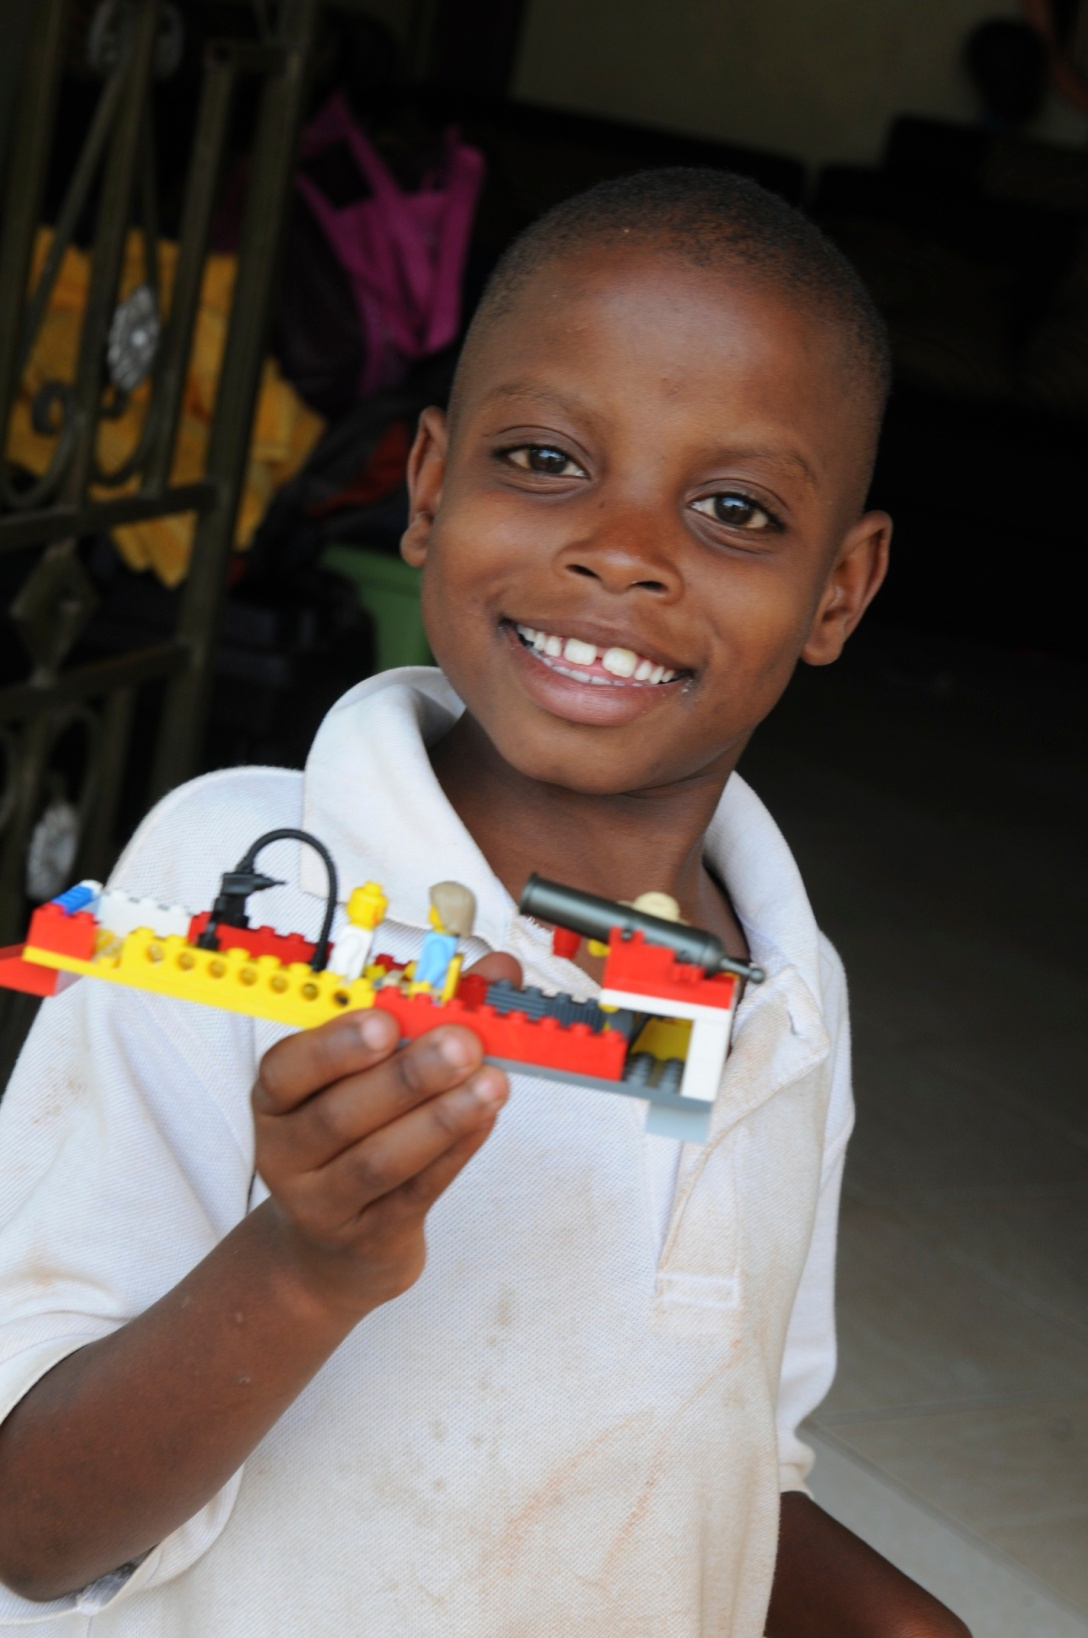 lawrence with the legos shared by Craig's sister, Amy!